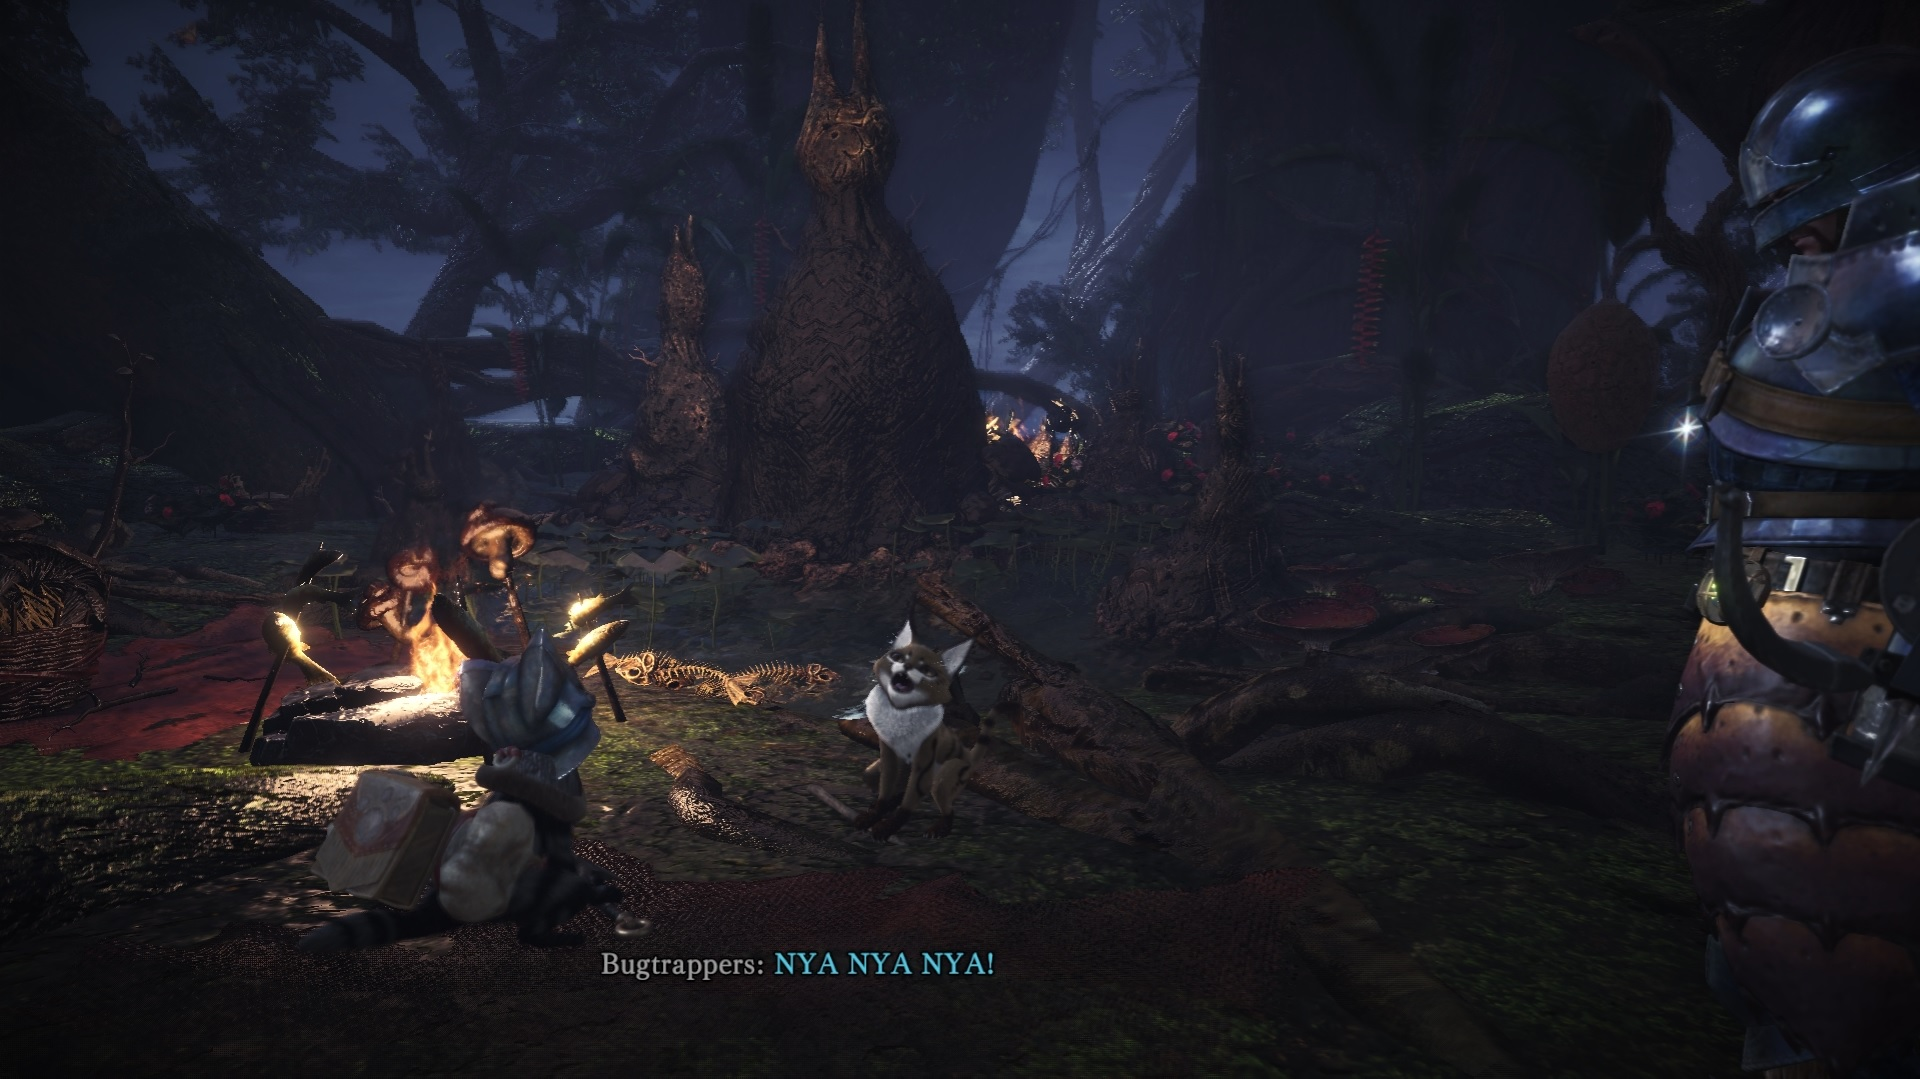 Player is encountering the Bugtrapper Grimalkyne